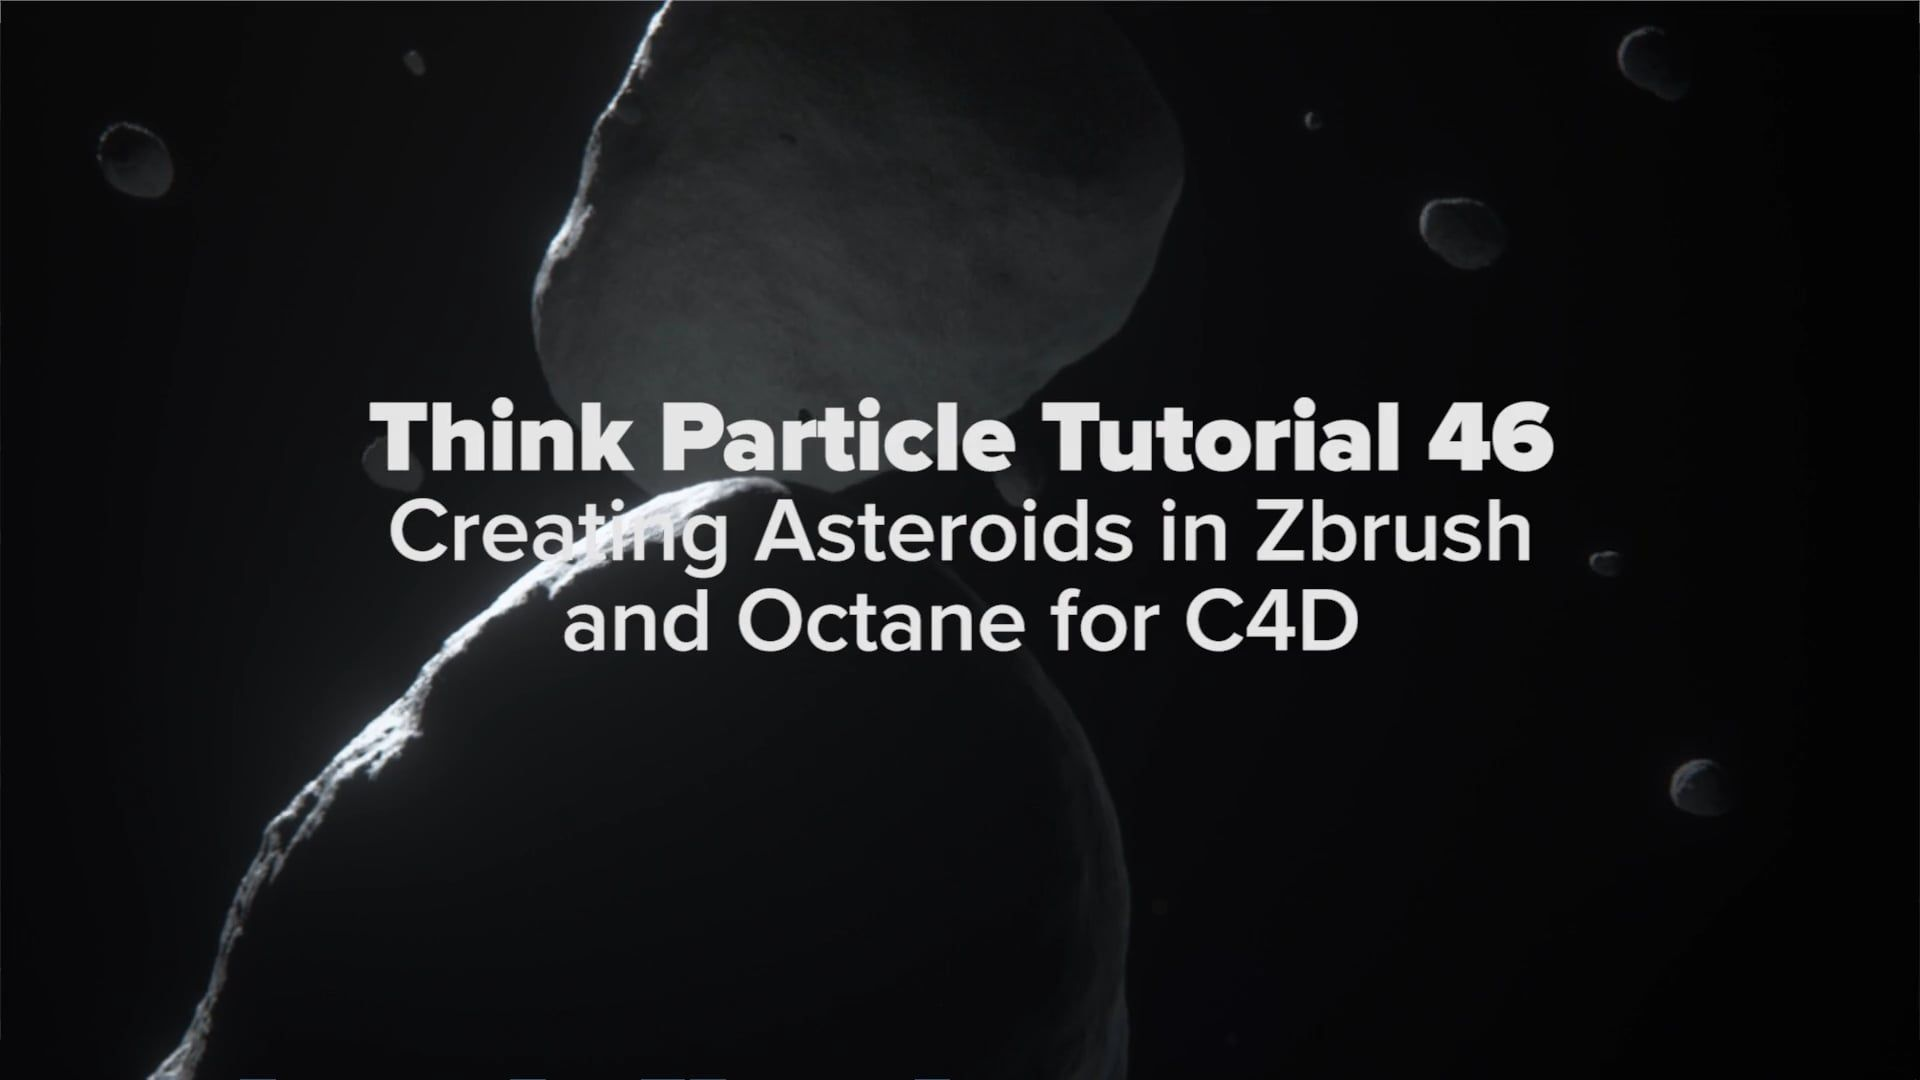 Think Particle Tutorial 46 - Creating an Asteroid in Zbrush